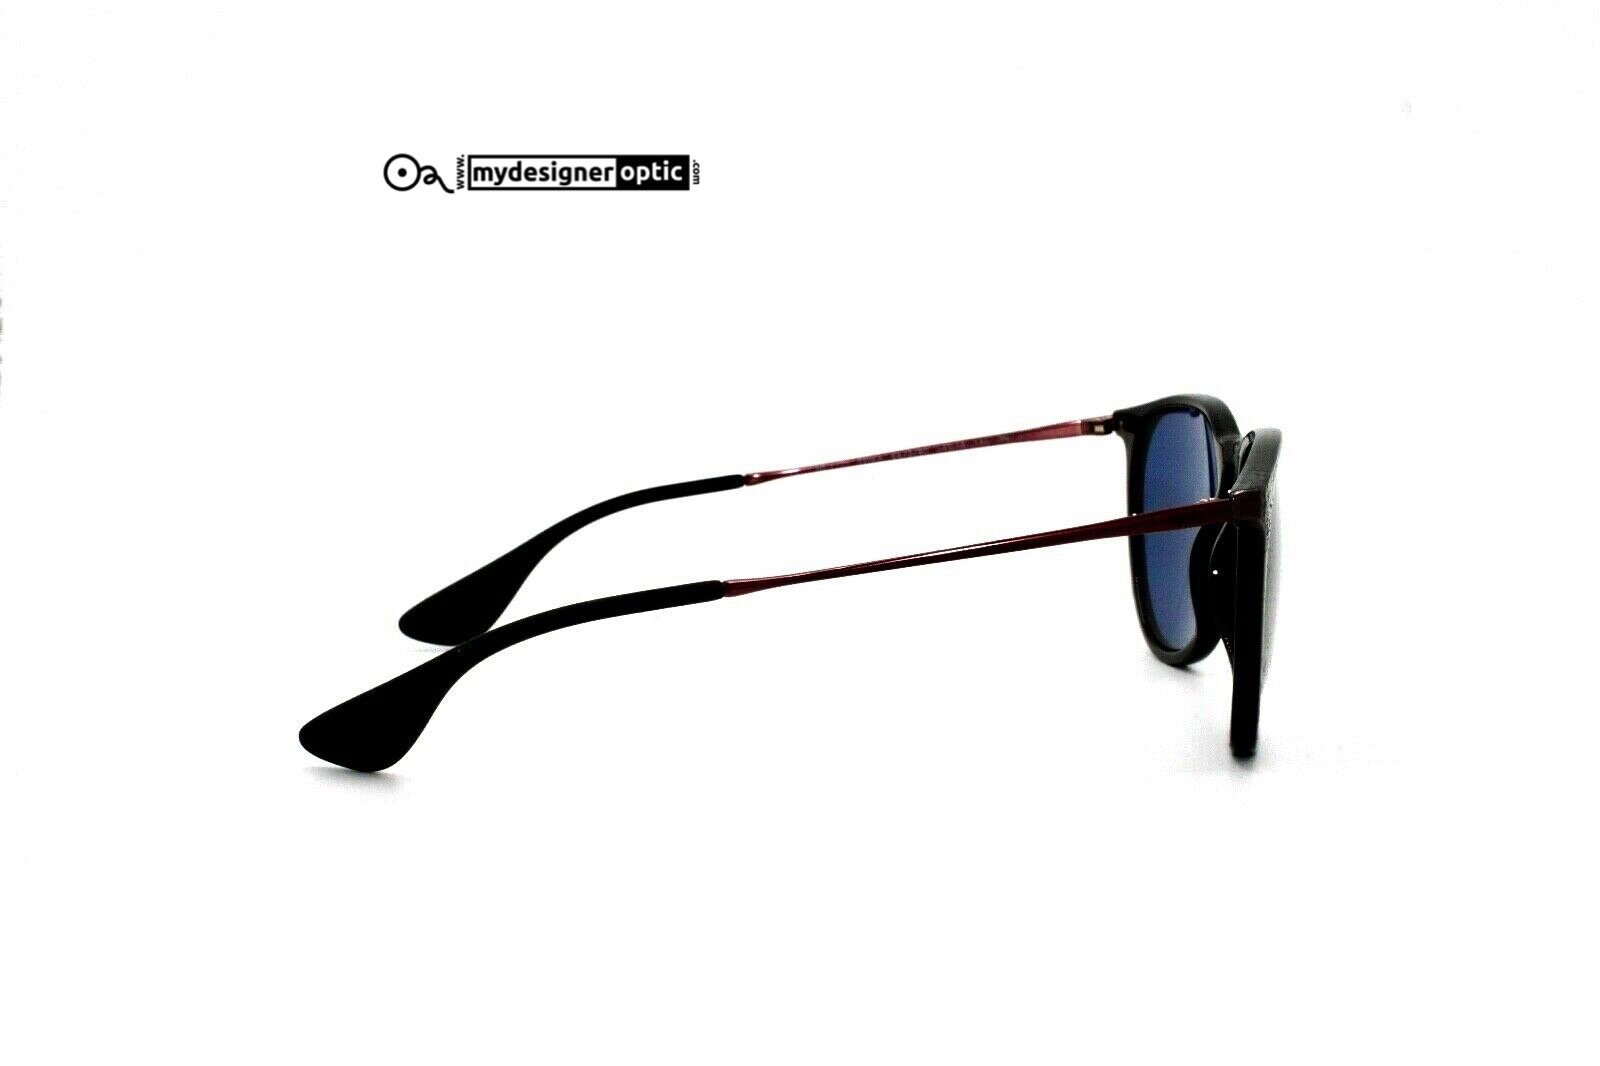 Ray Ban Sunglasses RB 4171 ERIKA 6473/80 54 18 145 3N Made in Italy - Mydesigneroptic